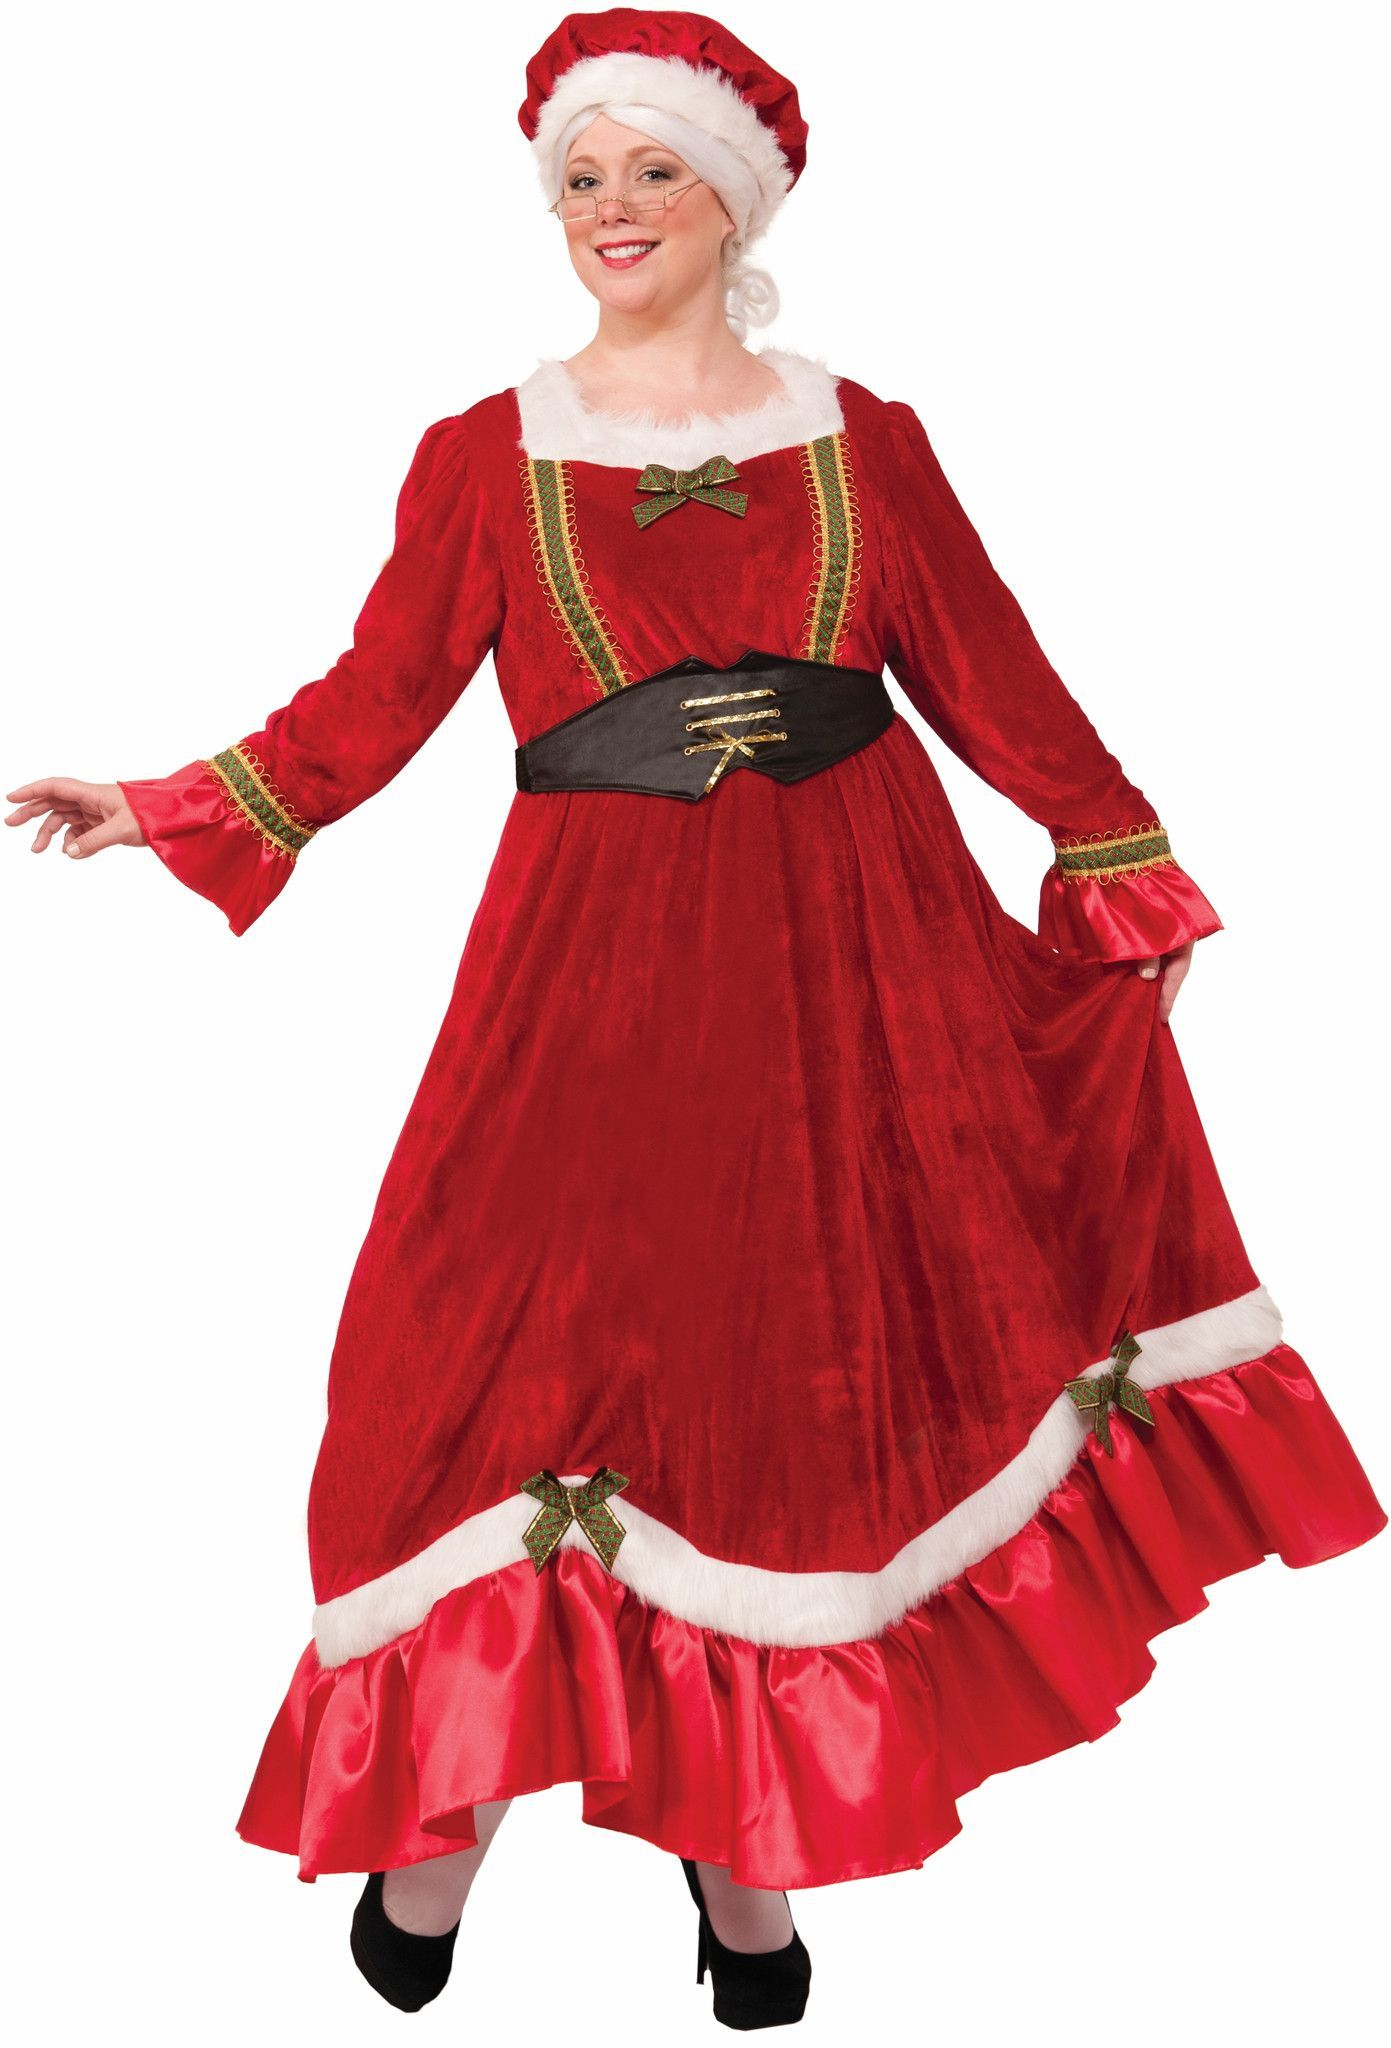 Mrs Claus Adult Costume Holidays And Celebrations Christmas